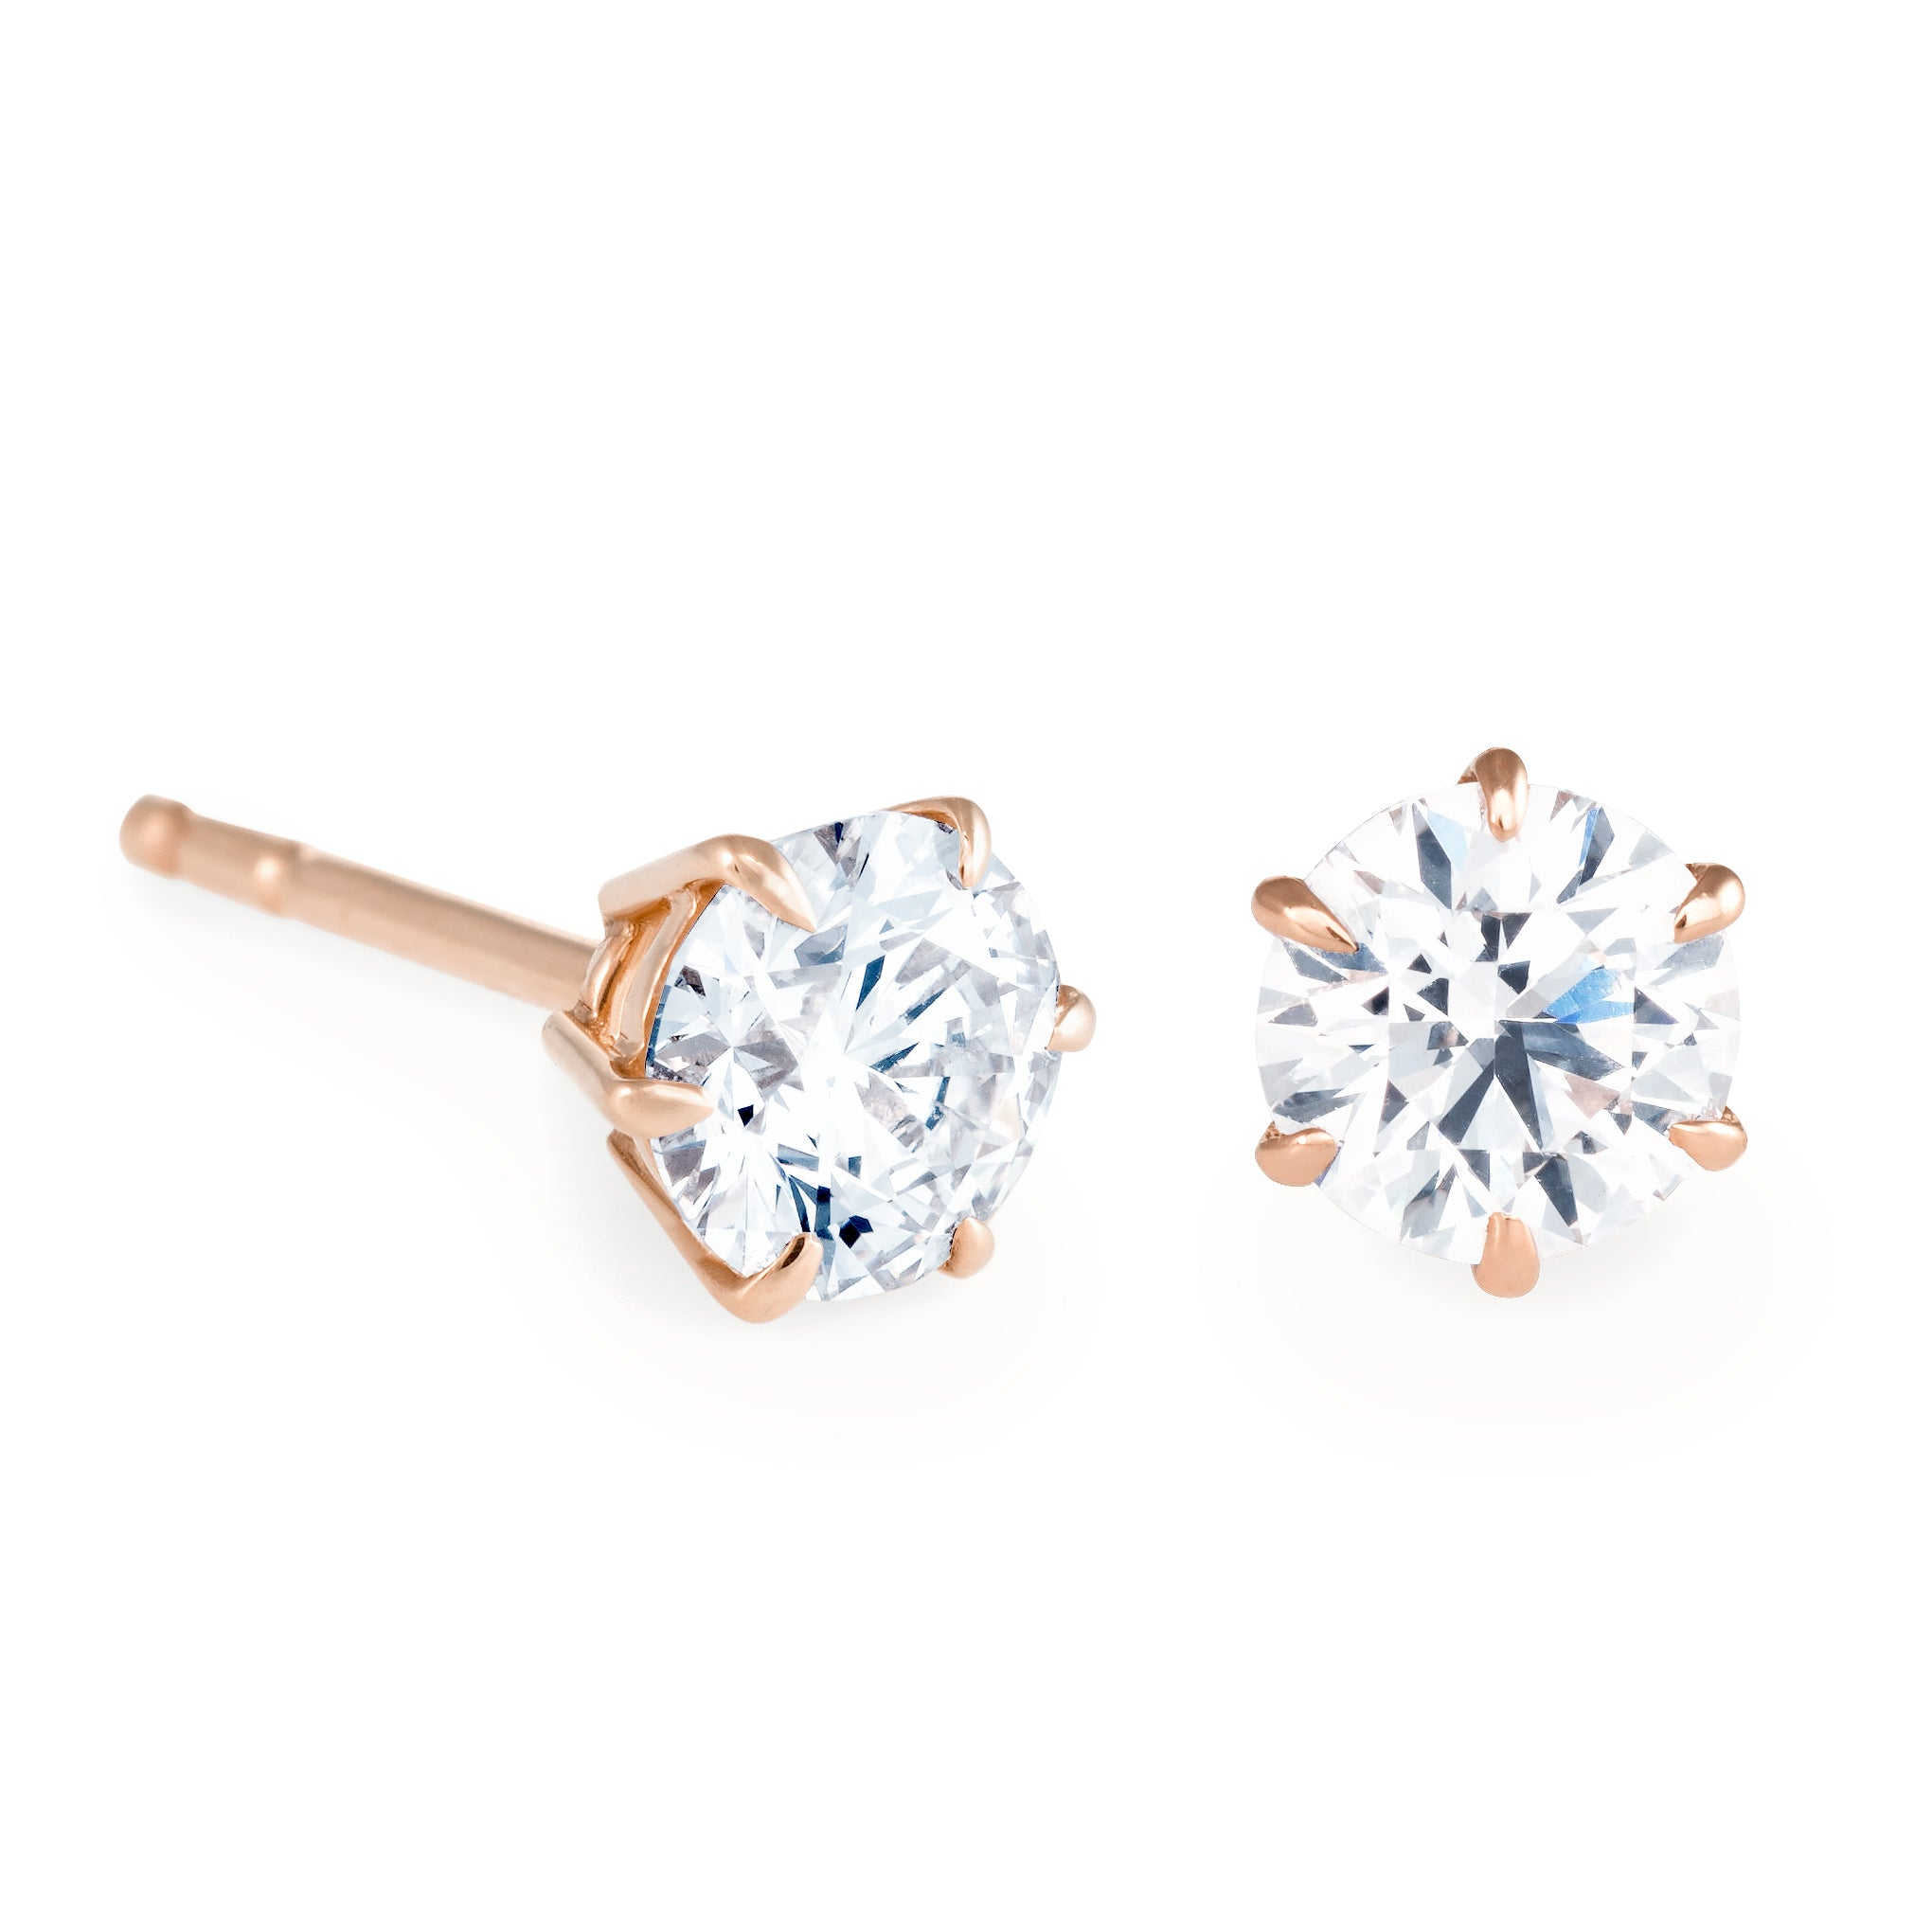 p ladies jewel jewelwesell earrings h white we sell or dia s c round diamond prod cut rose gold fancy yg src net yellow solitaire genuine